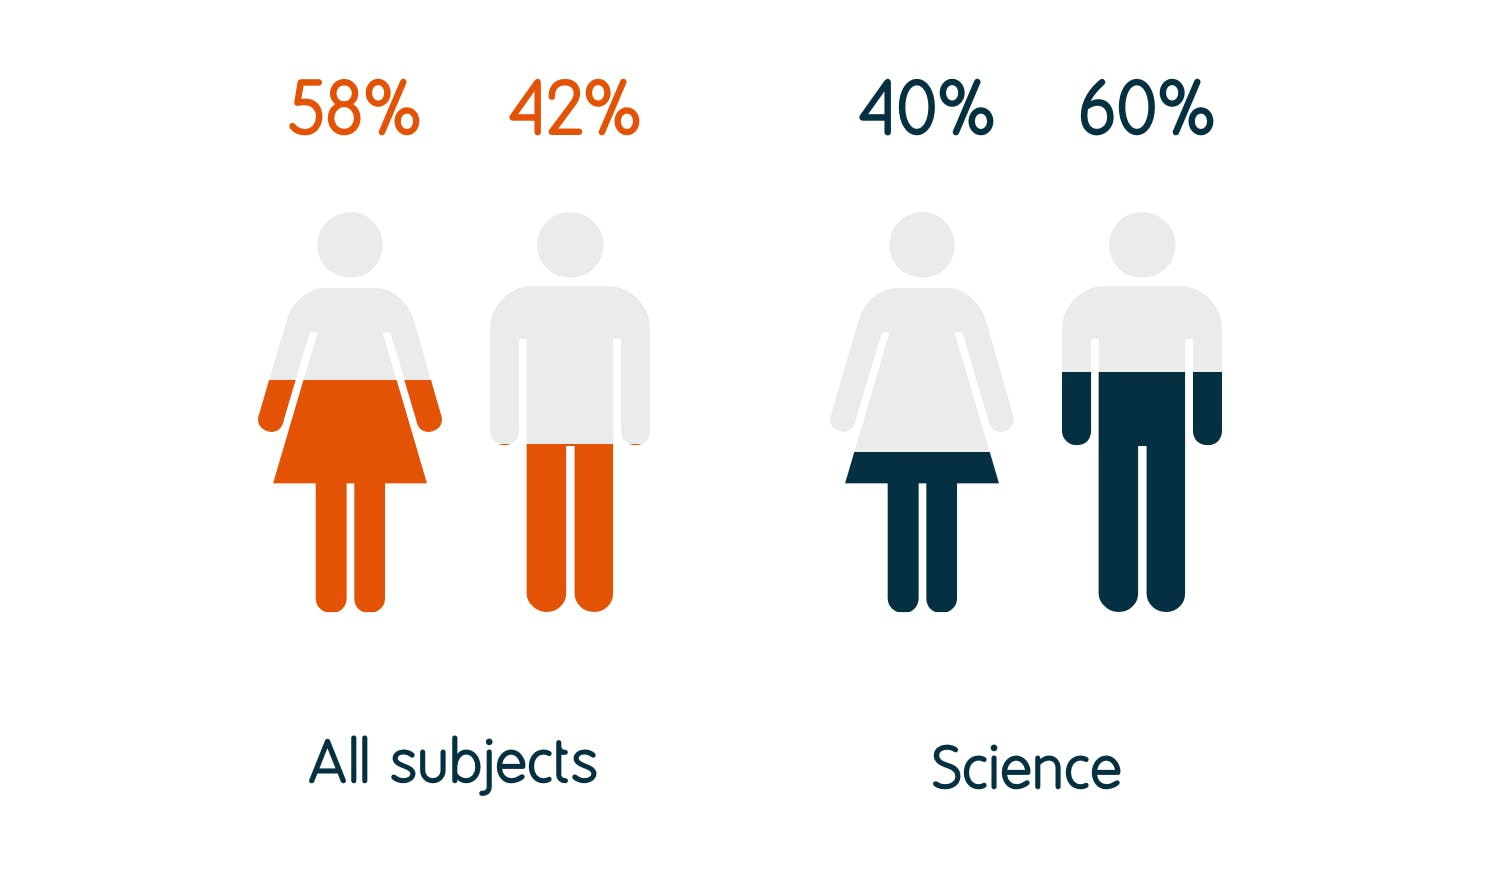 40% of science graduates identify as female and 60% as male, compared to 58% female and 42% male for all graduates.